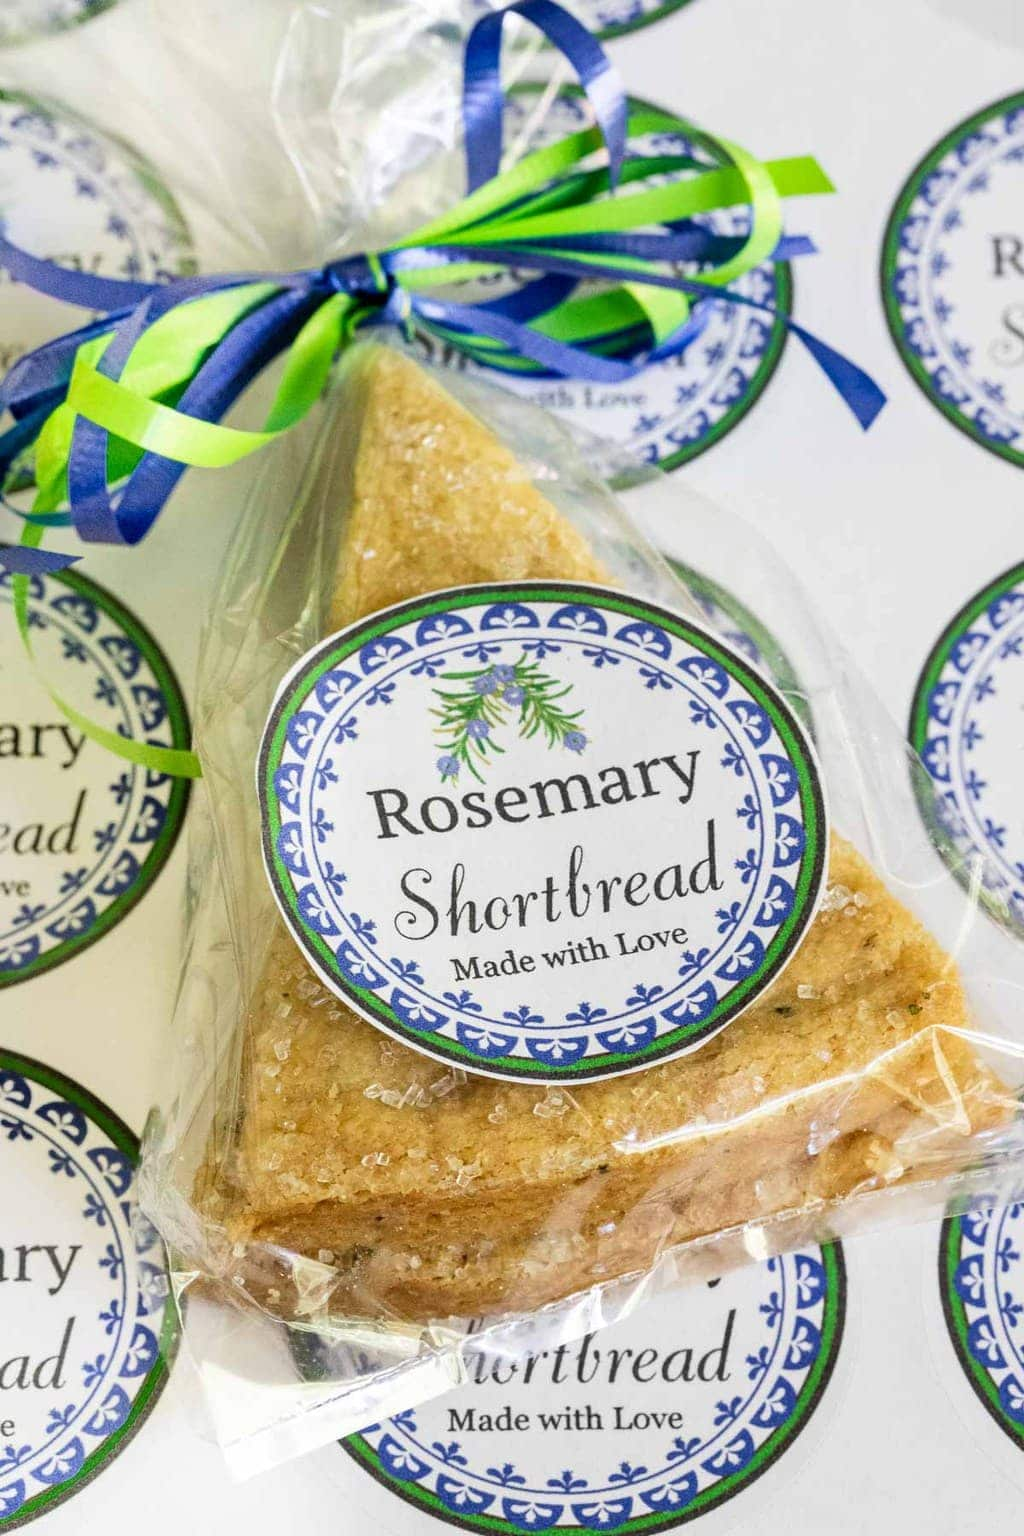 Vertical extreme closeup photo of Rosemary Shortbread in a bag with a custom gift label.